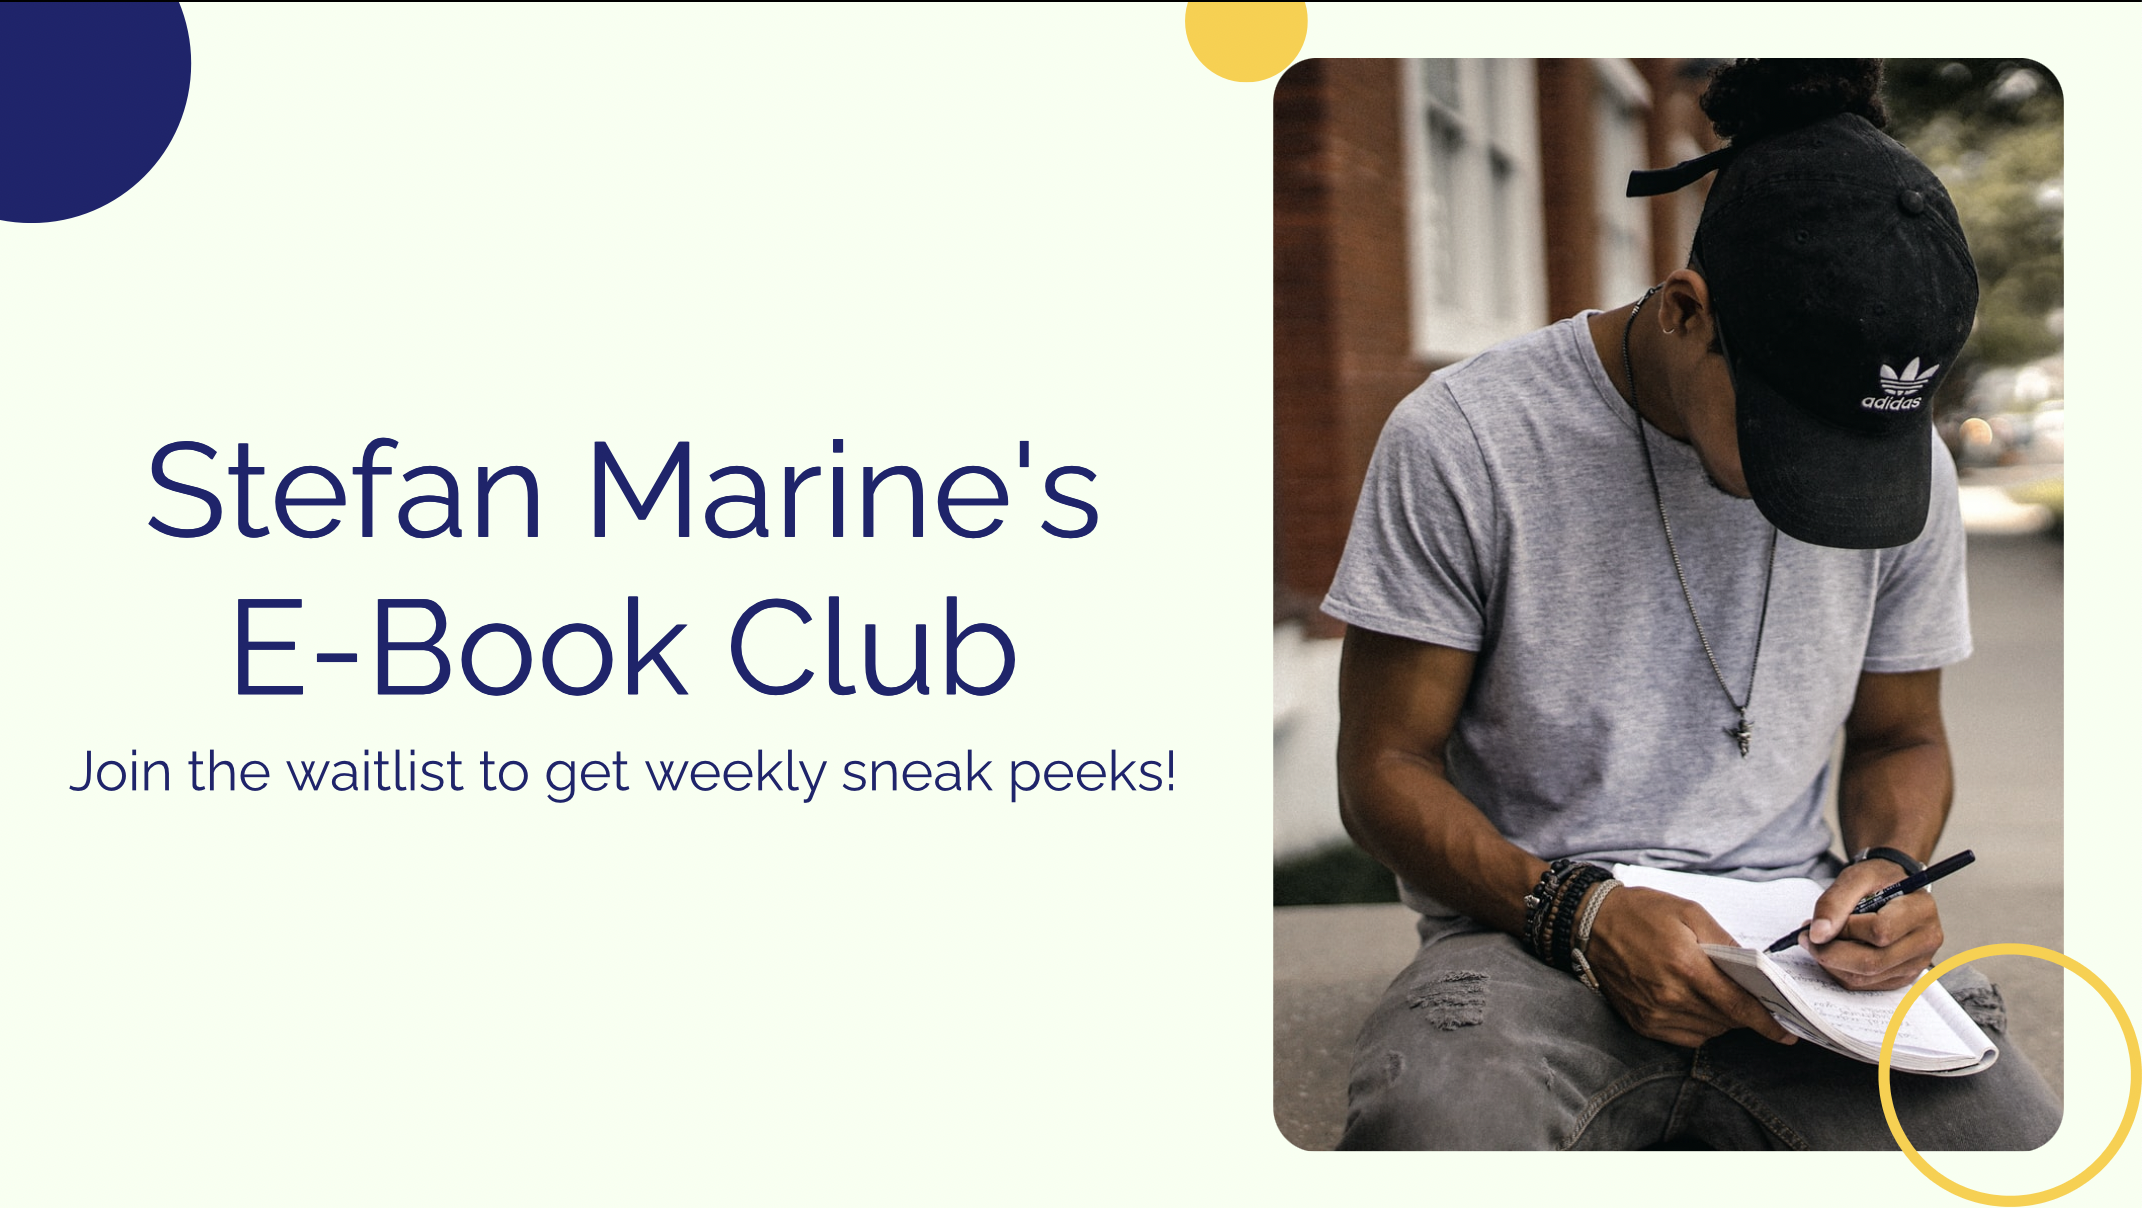 It's not enough to publish an e-book if people don't know it exists; why not join in on all of the interview posts I see when they talk about launch days? With this product, you'll be able to build a waitlist and get pre-sale before publishing your e-book!